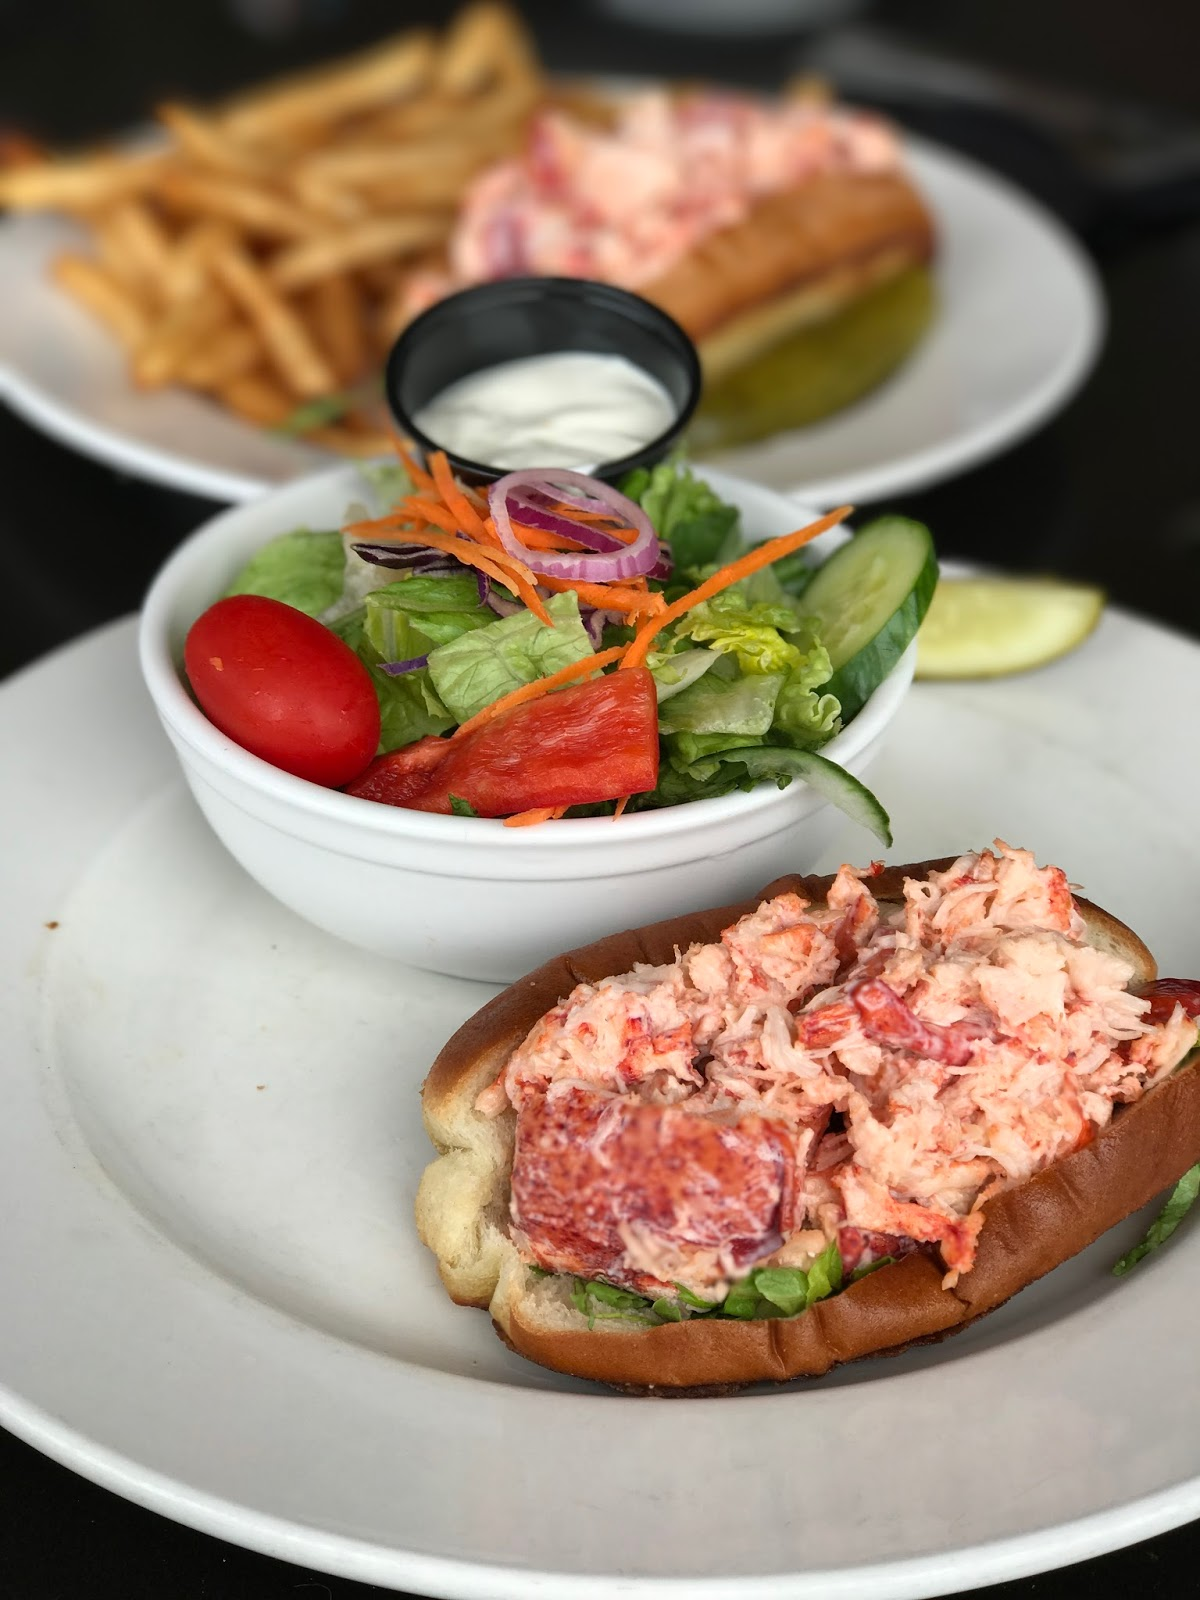 Restaurants in Newburyport, where to eat in Newburyport, New England Day Trips, Things to do around New England, Lobster Rolls